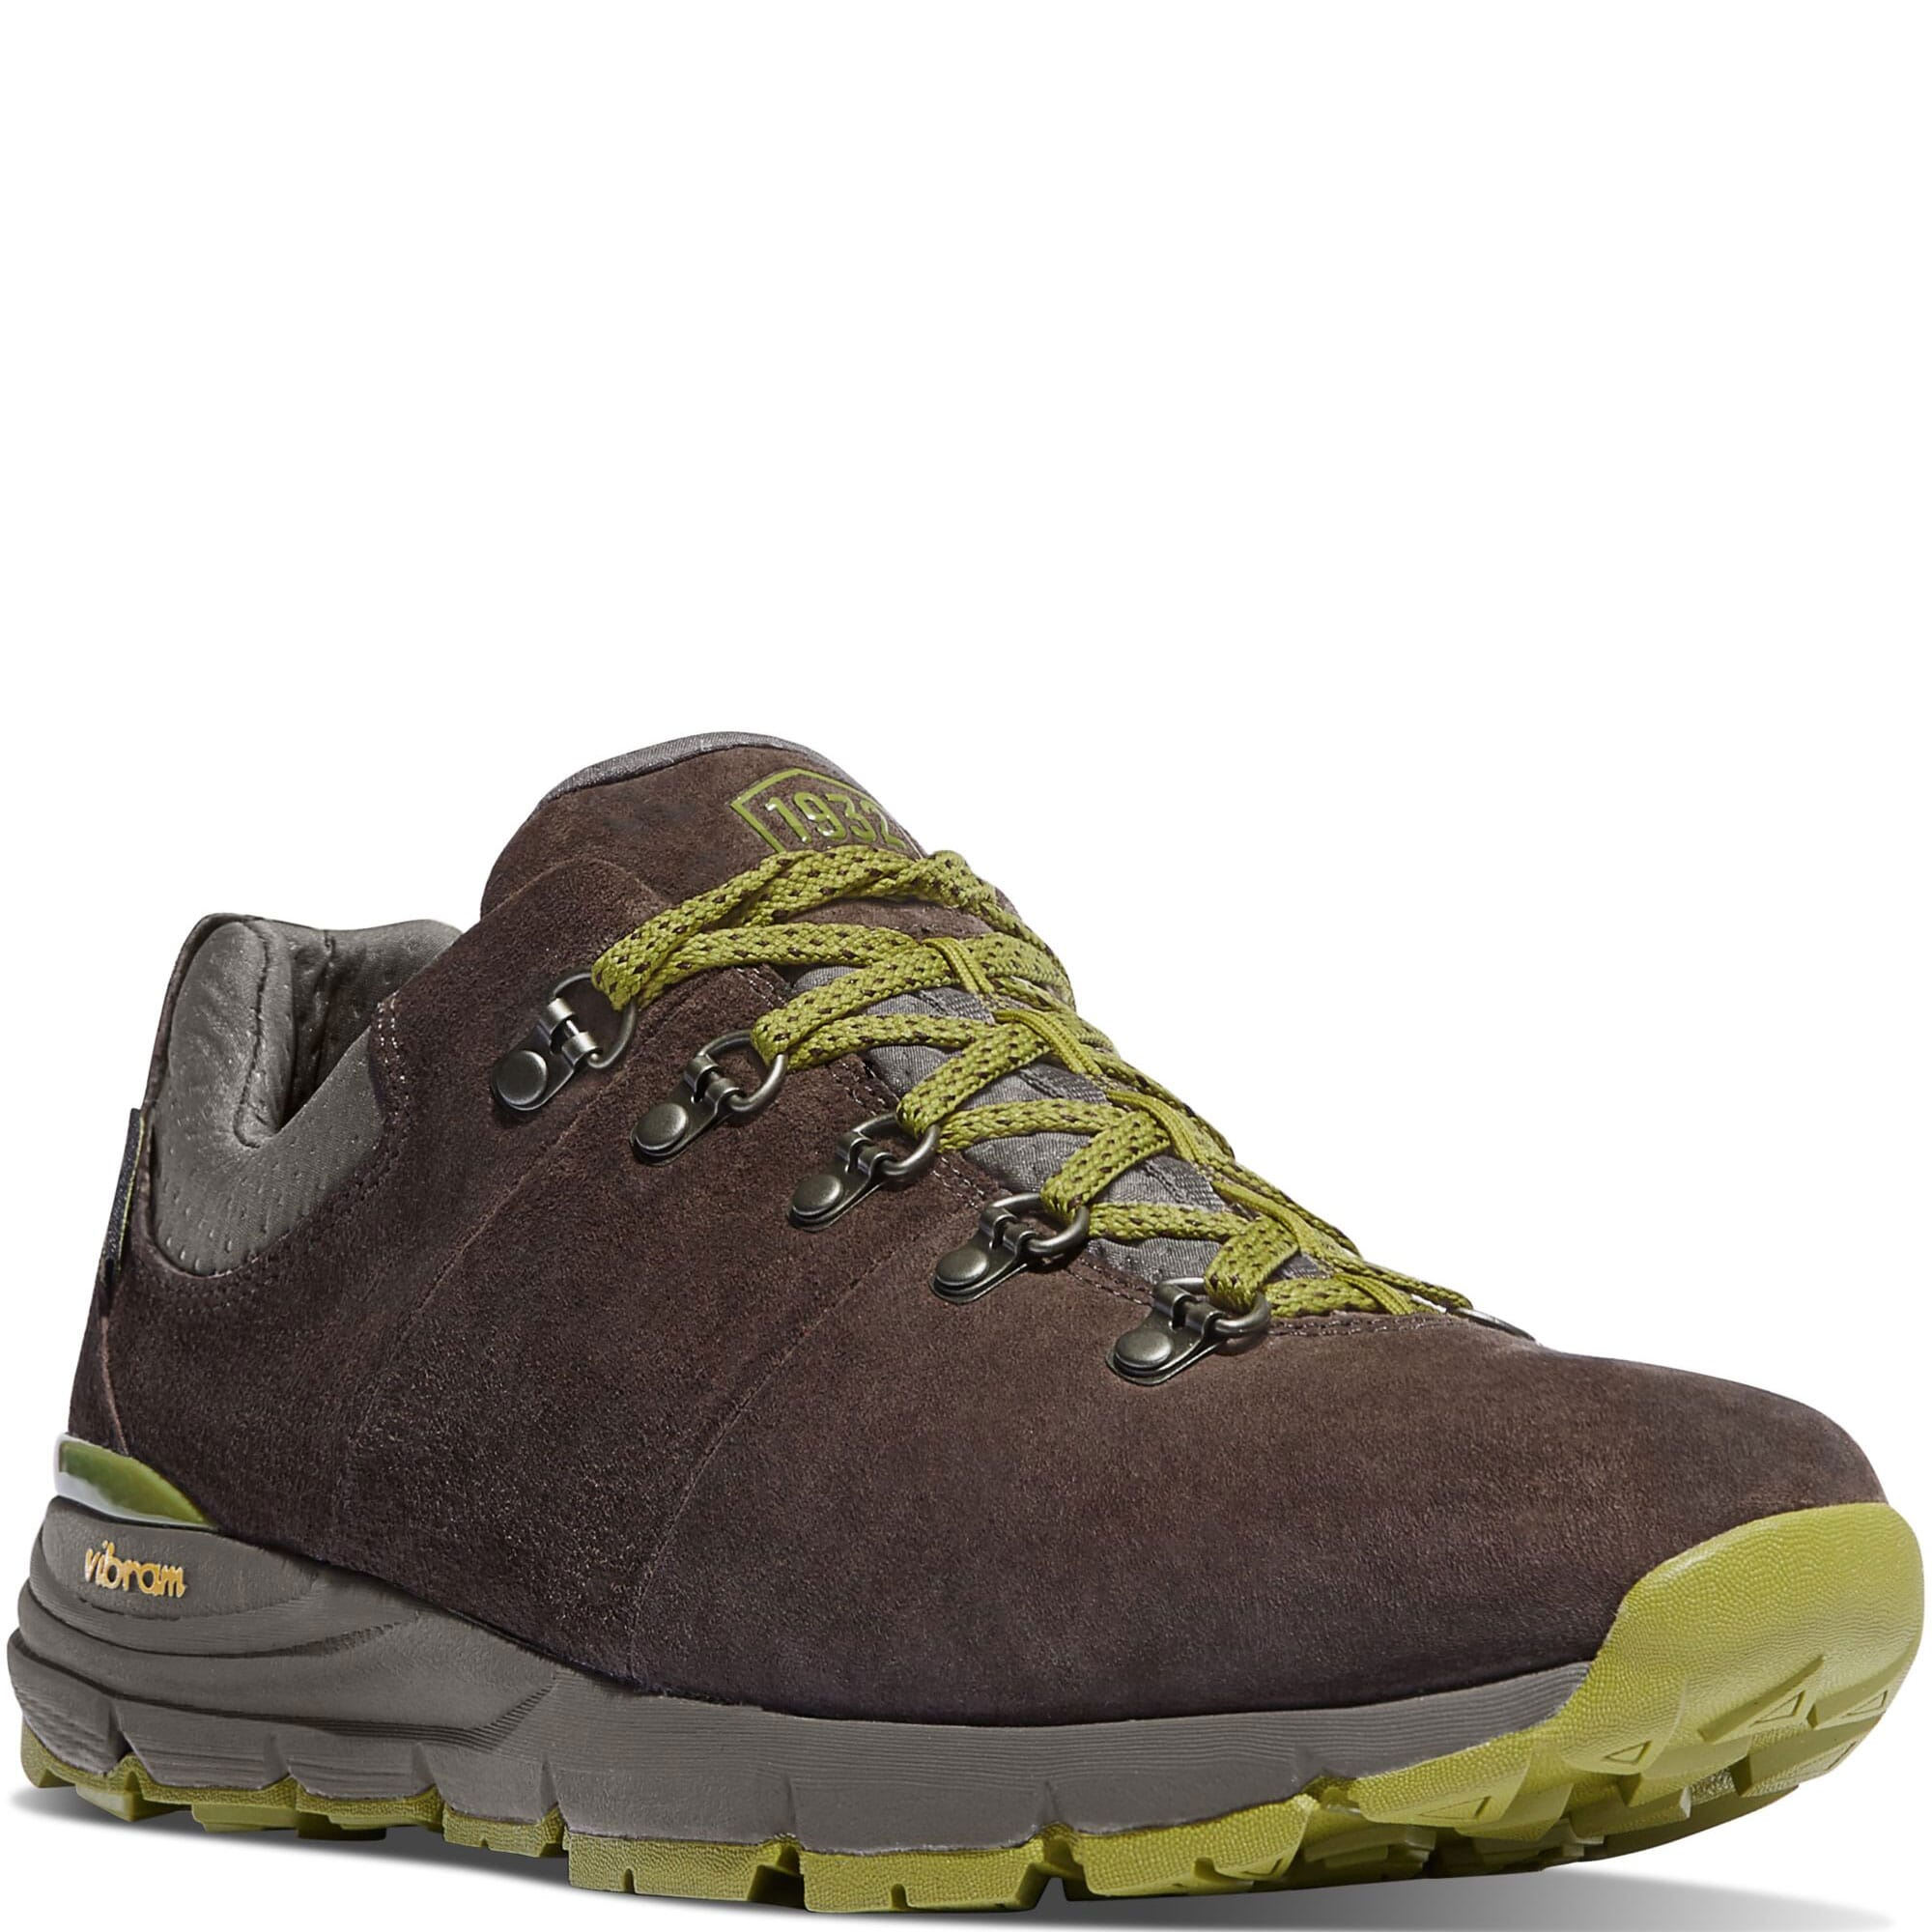 Image for Danner Men's Mountain 600 Low Hiking Shoes - Dark Brown/Lichen from bootbay